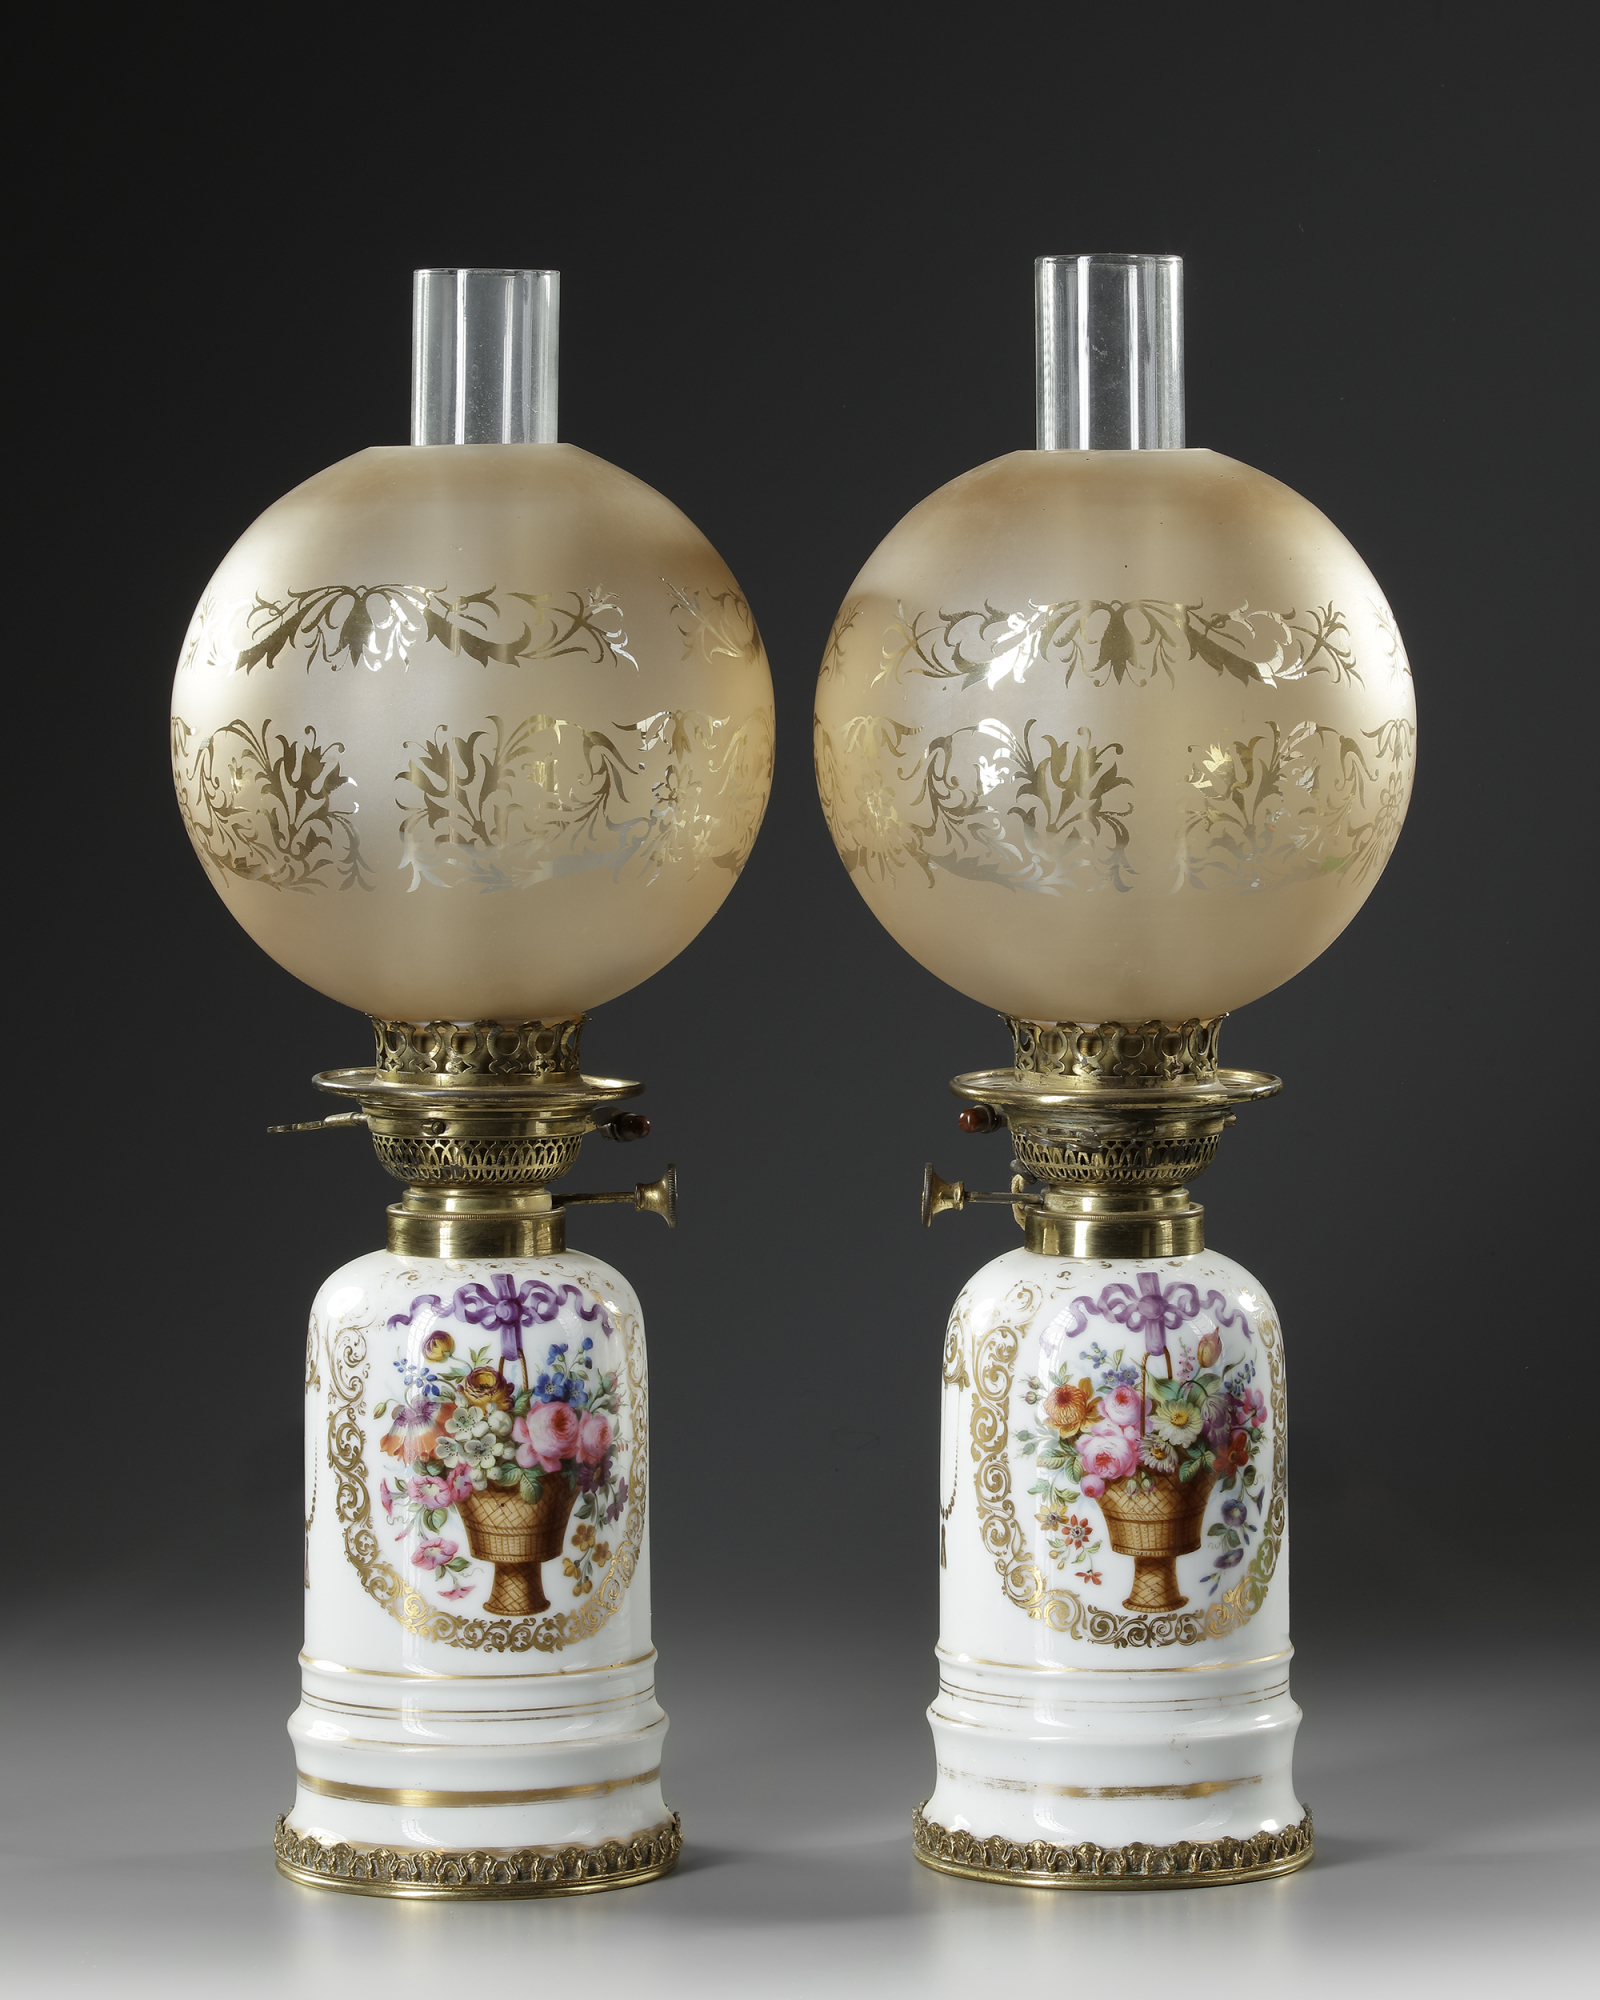 A PAIR OF WHITE PORCELAIN LAMPS, LATE 19TH CENTURY